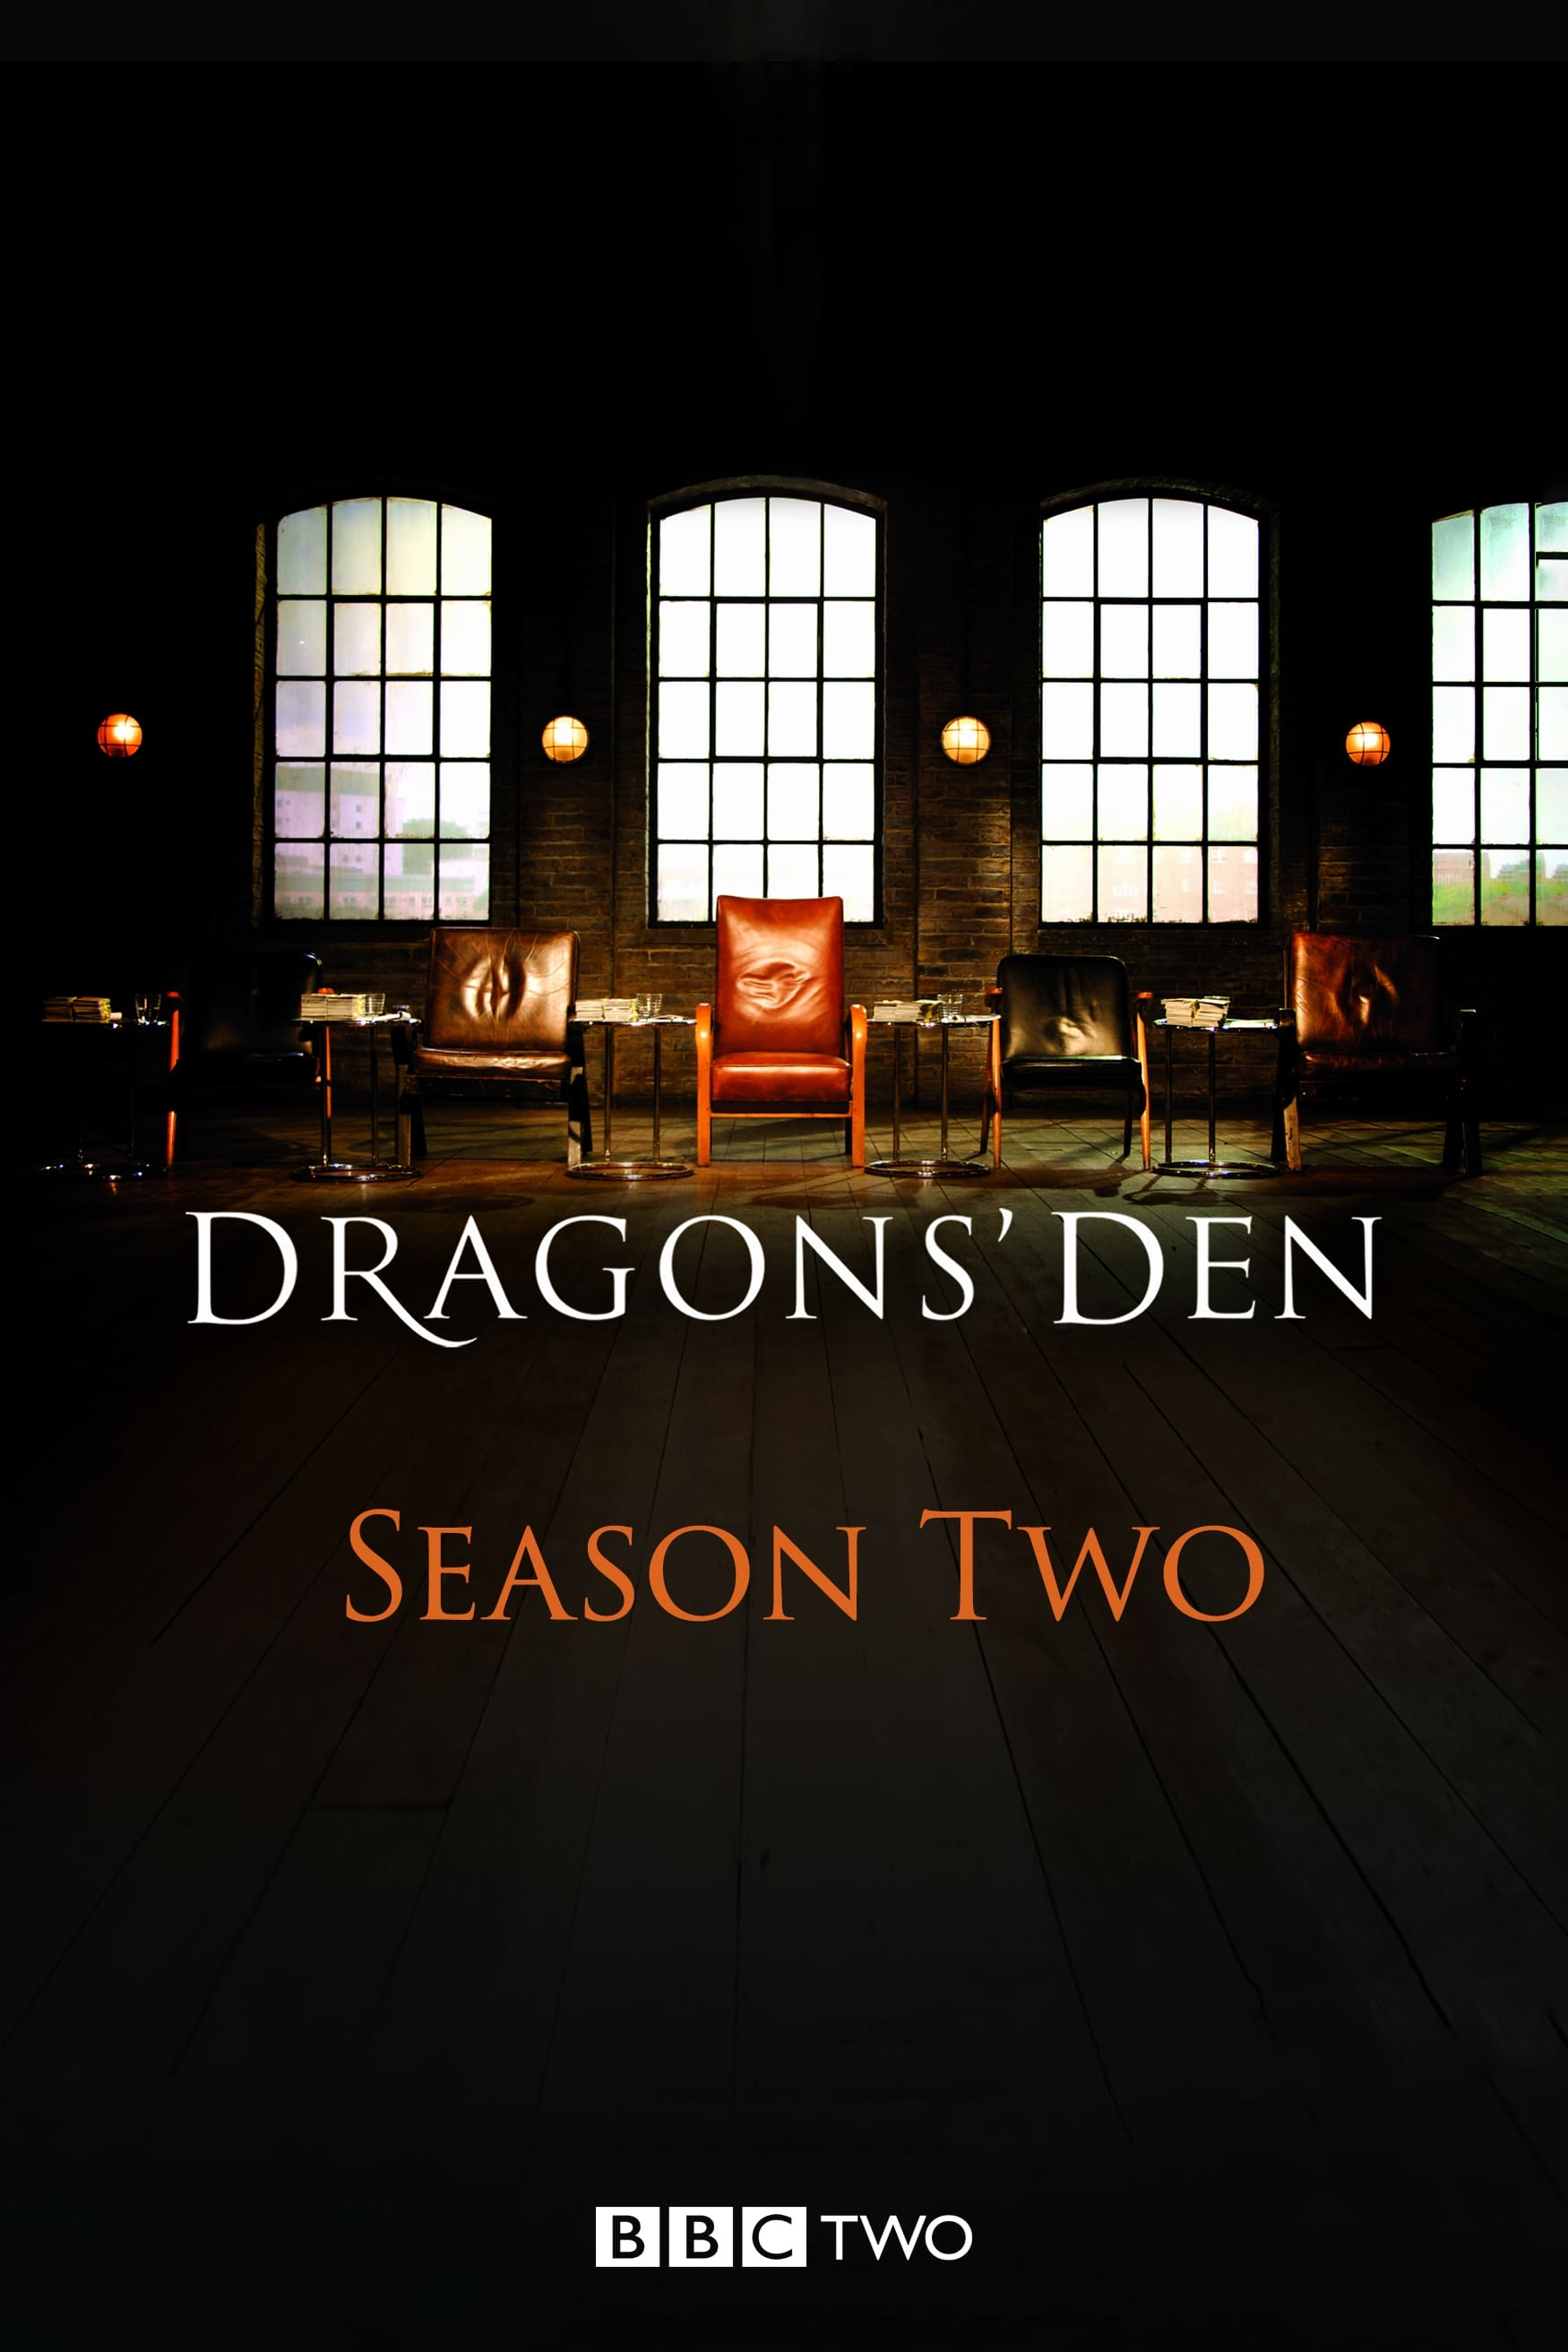 Dragons' Den Season 2